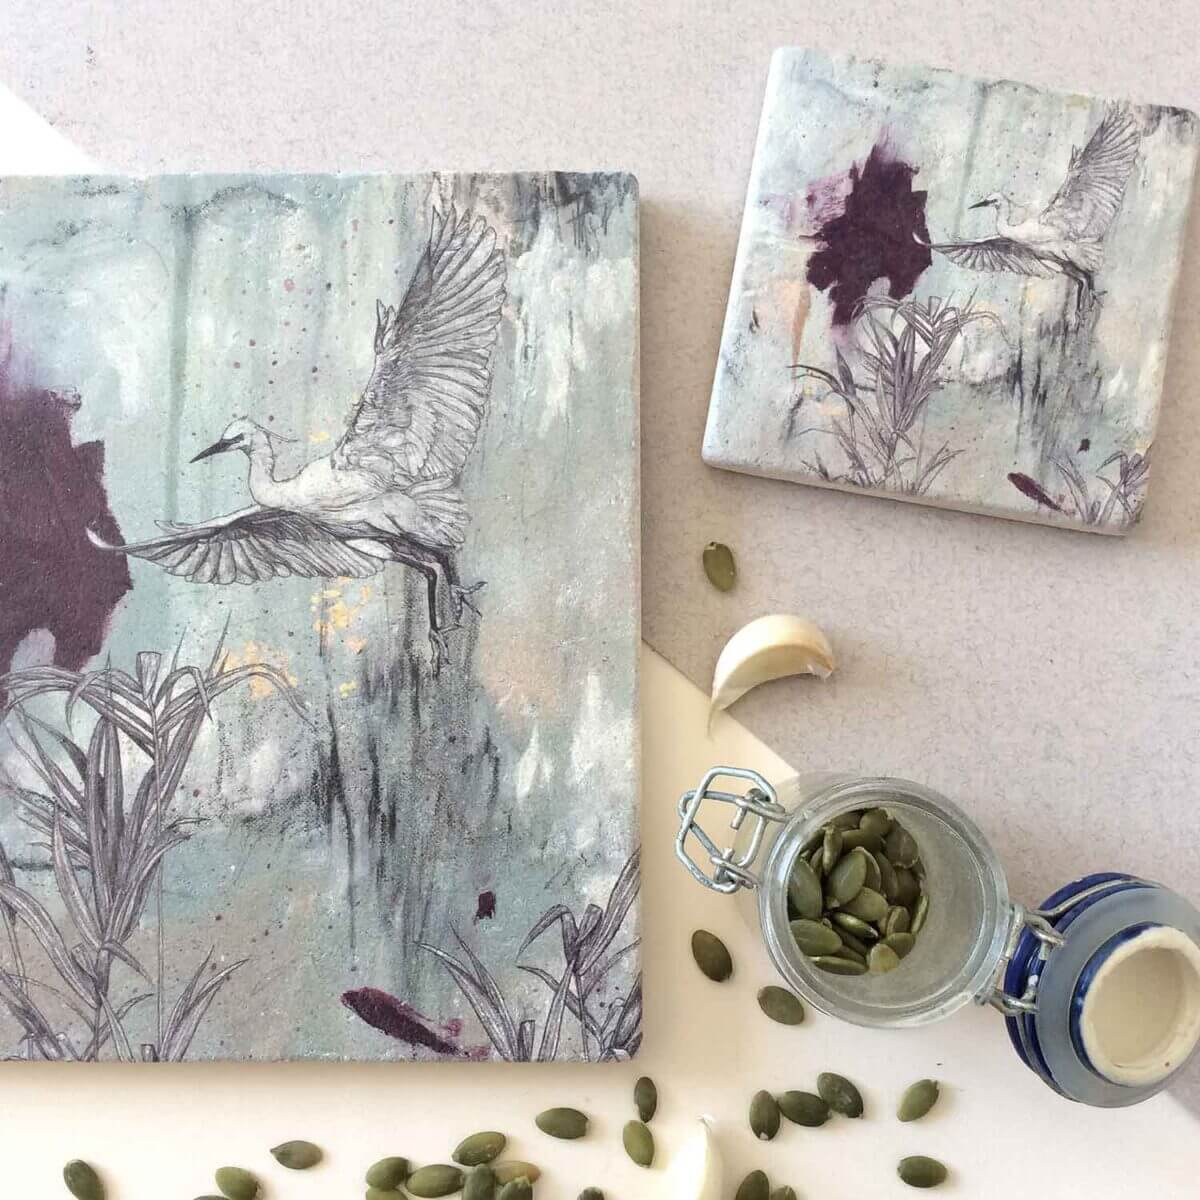 Little-Egret-Coaster-Placemat-Styled-Sky-Siouki